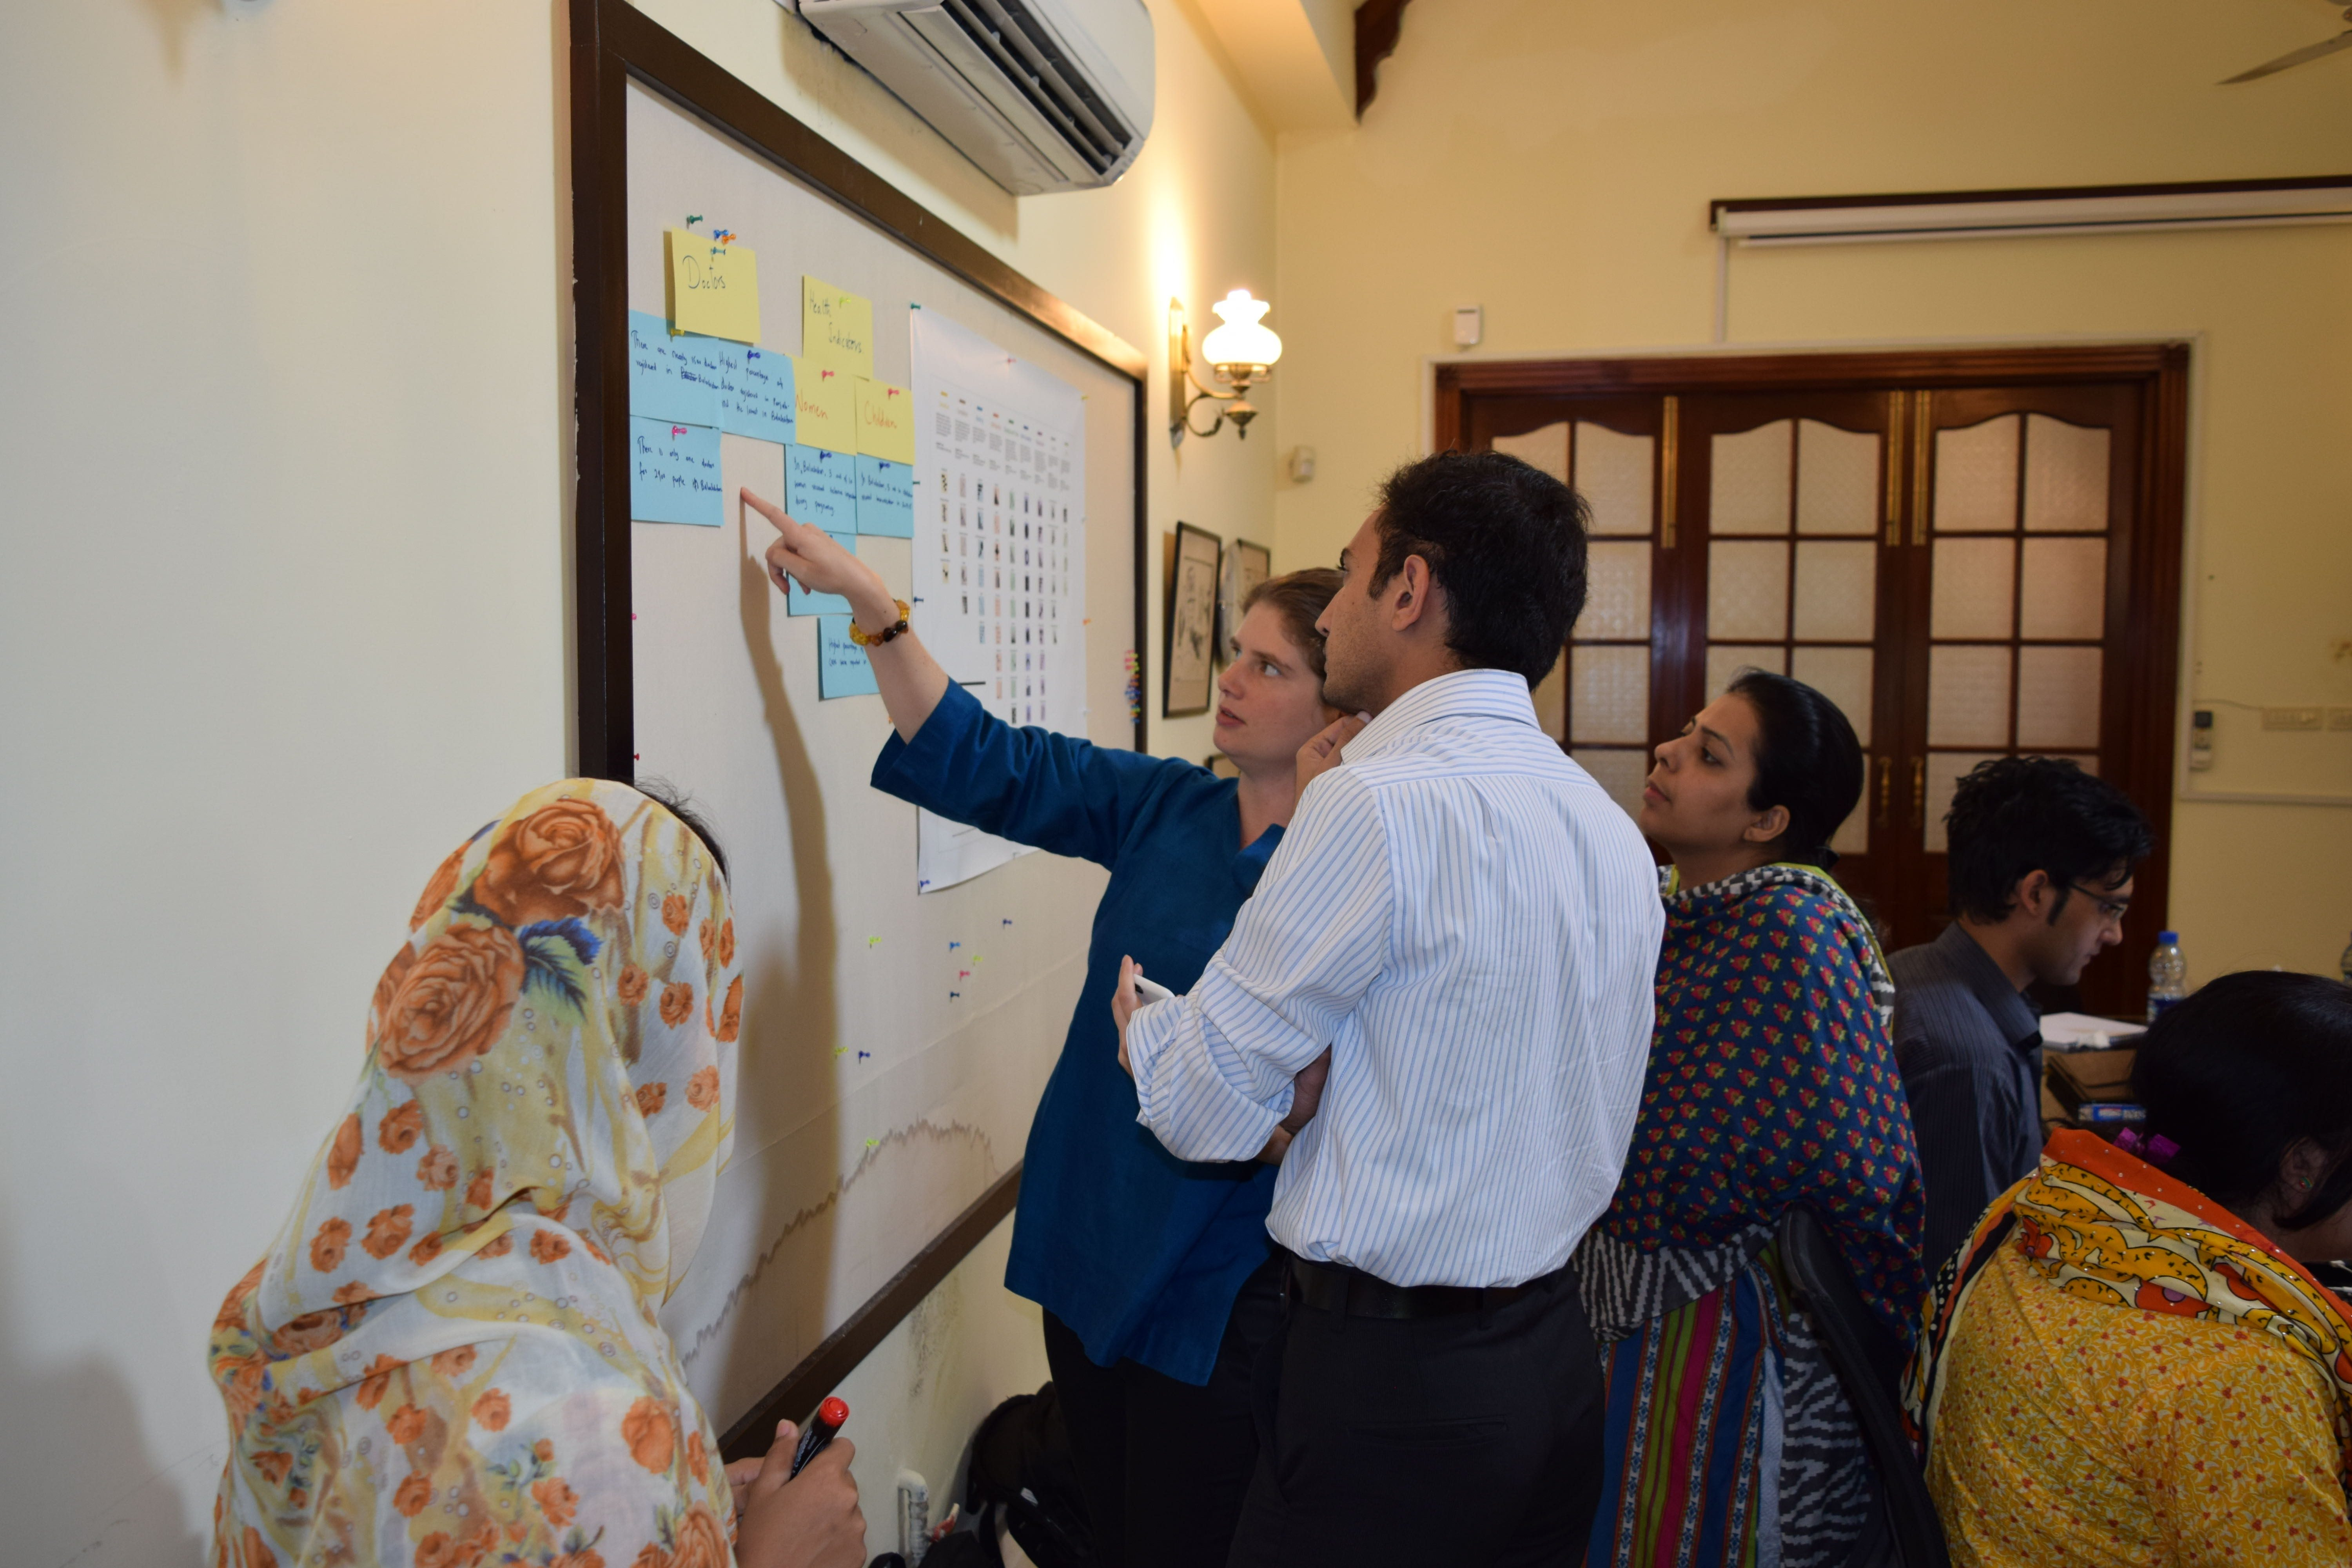 Figure 45.1. Data journalists in pakistan develop initial wireframes with their data findings. Source: Internews.